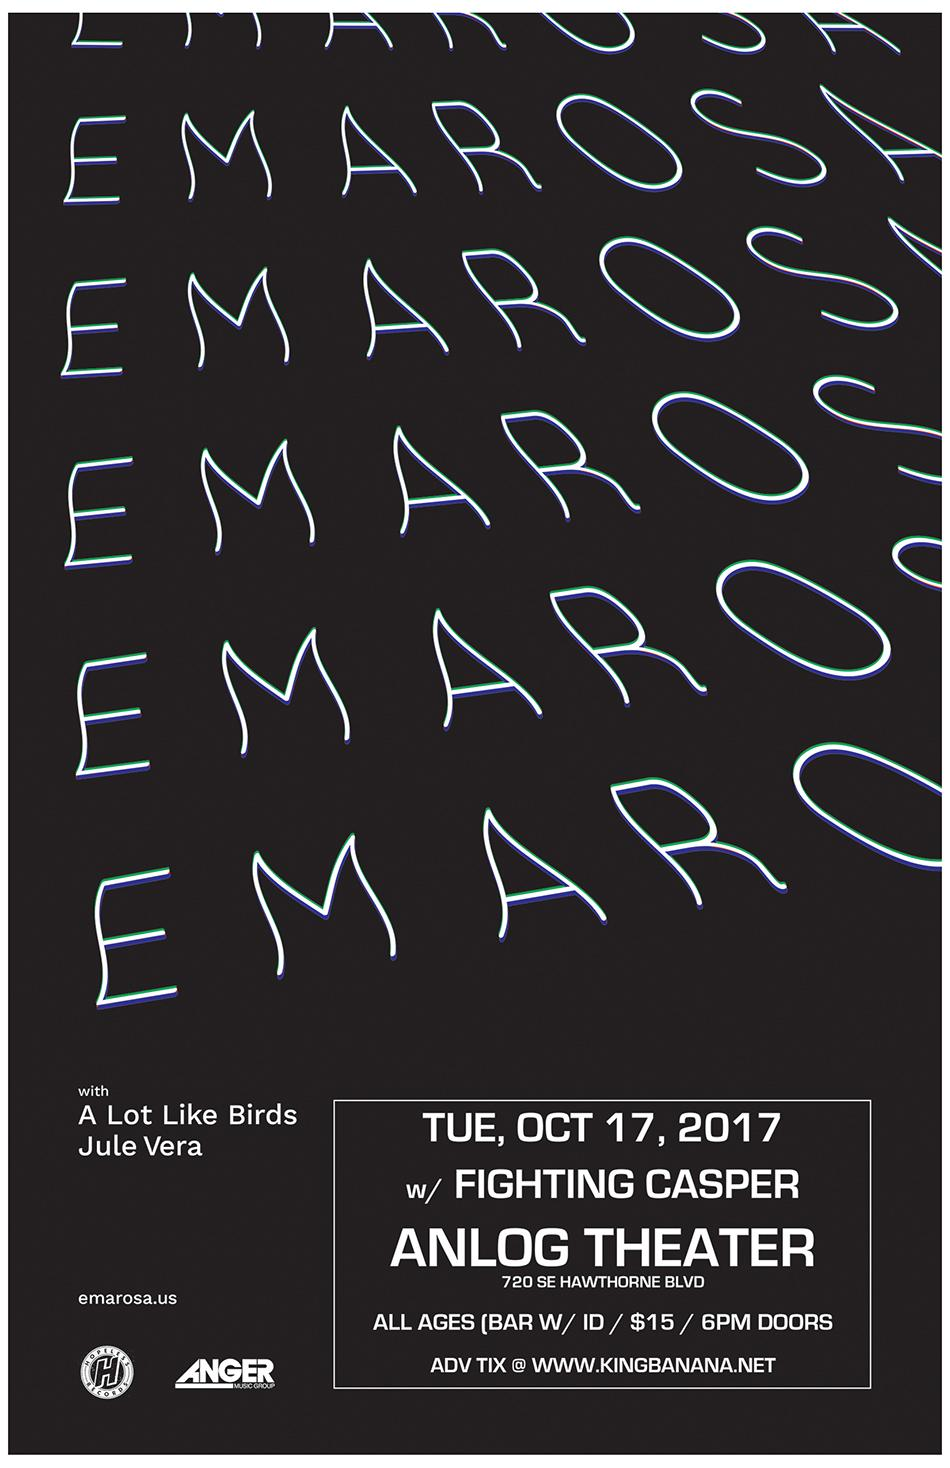 Emarosa, A Lot Like Birds *Tickets will be available at the door